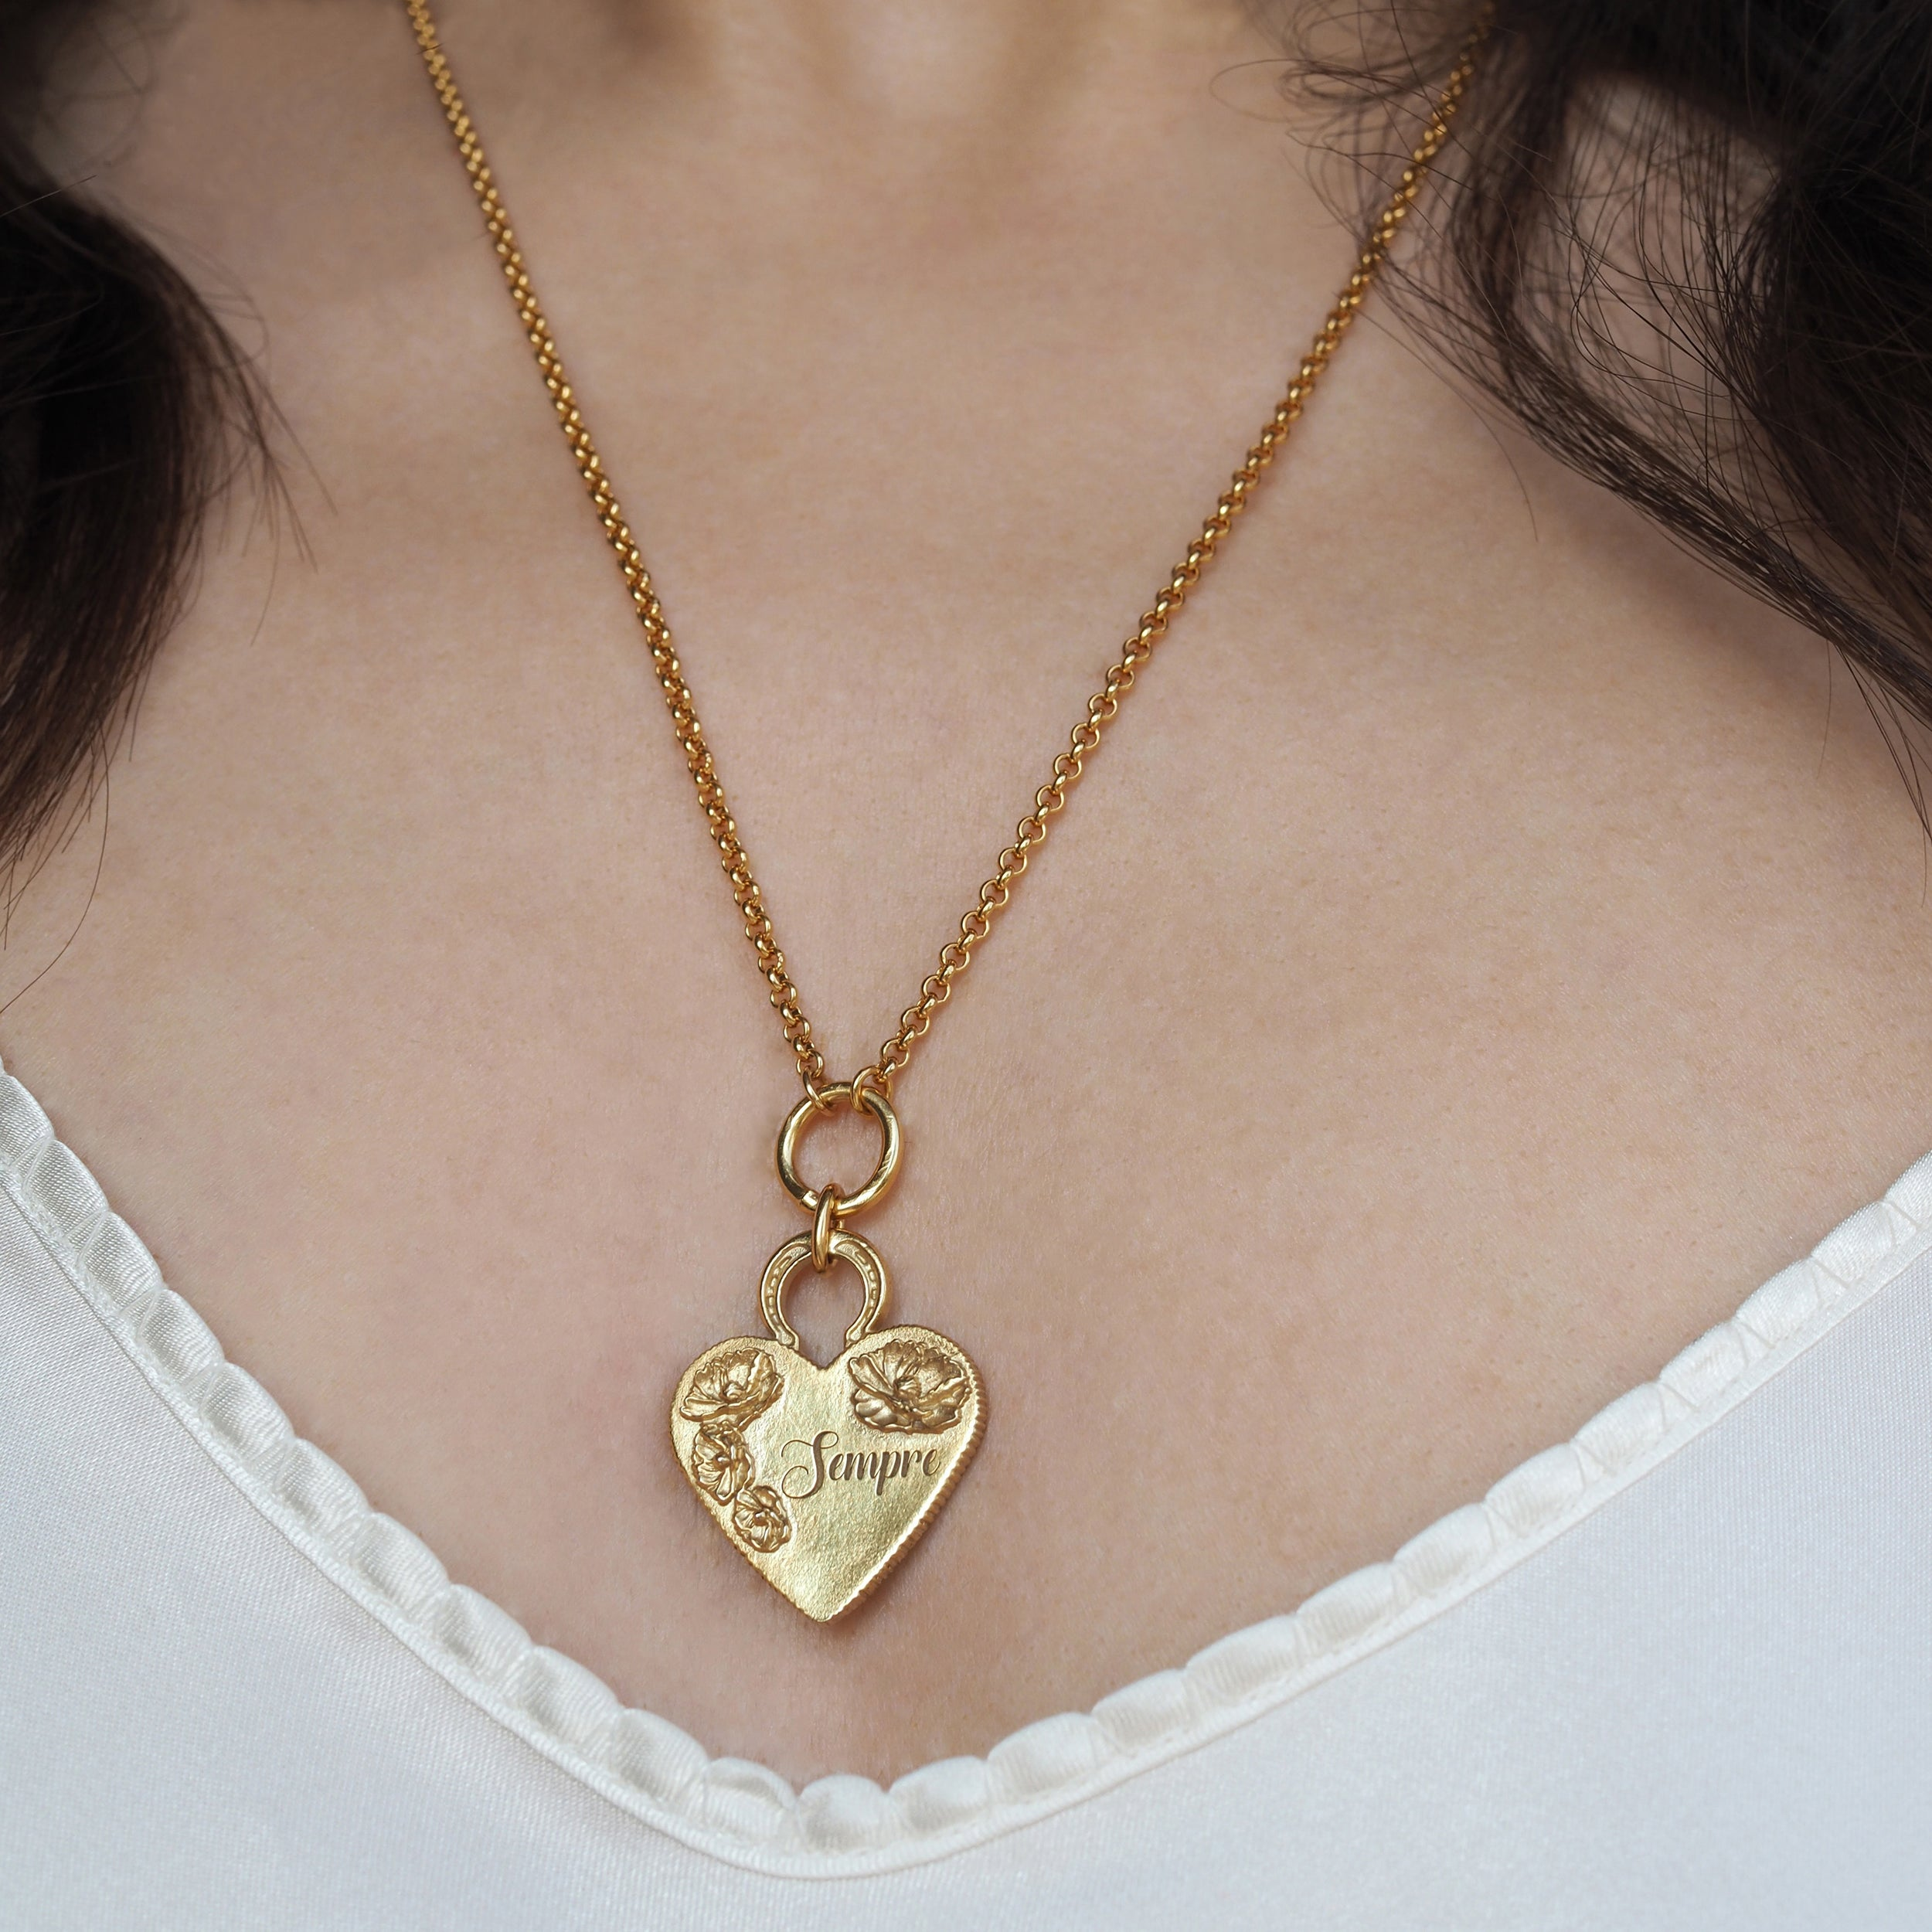 ENGRAVED FLOWER HEART PENDANT